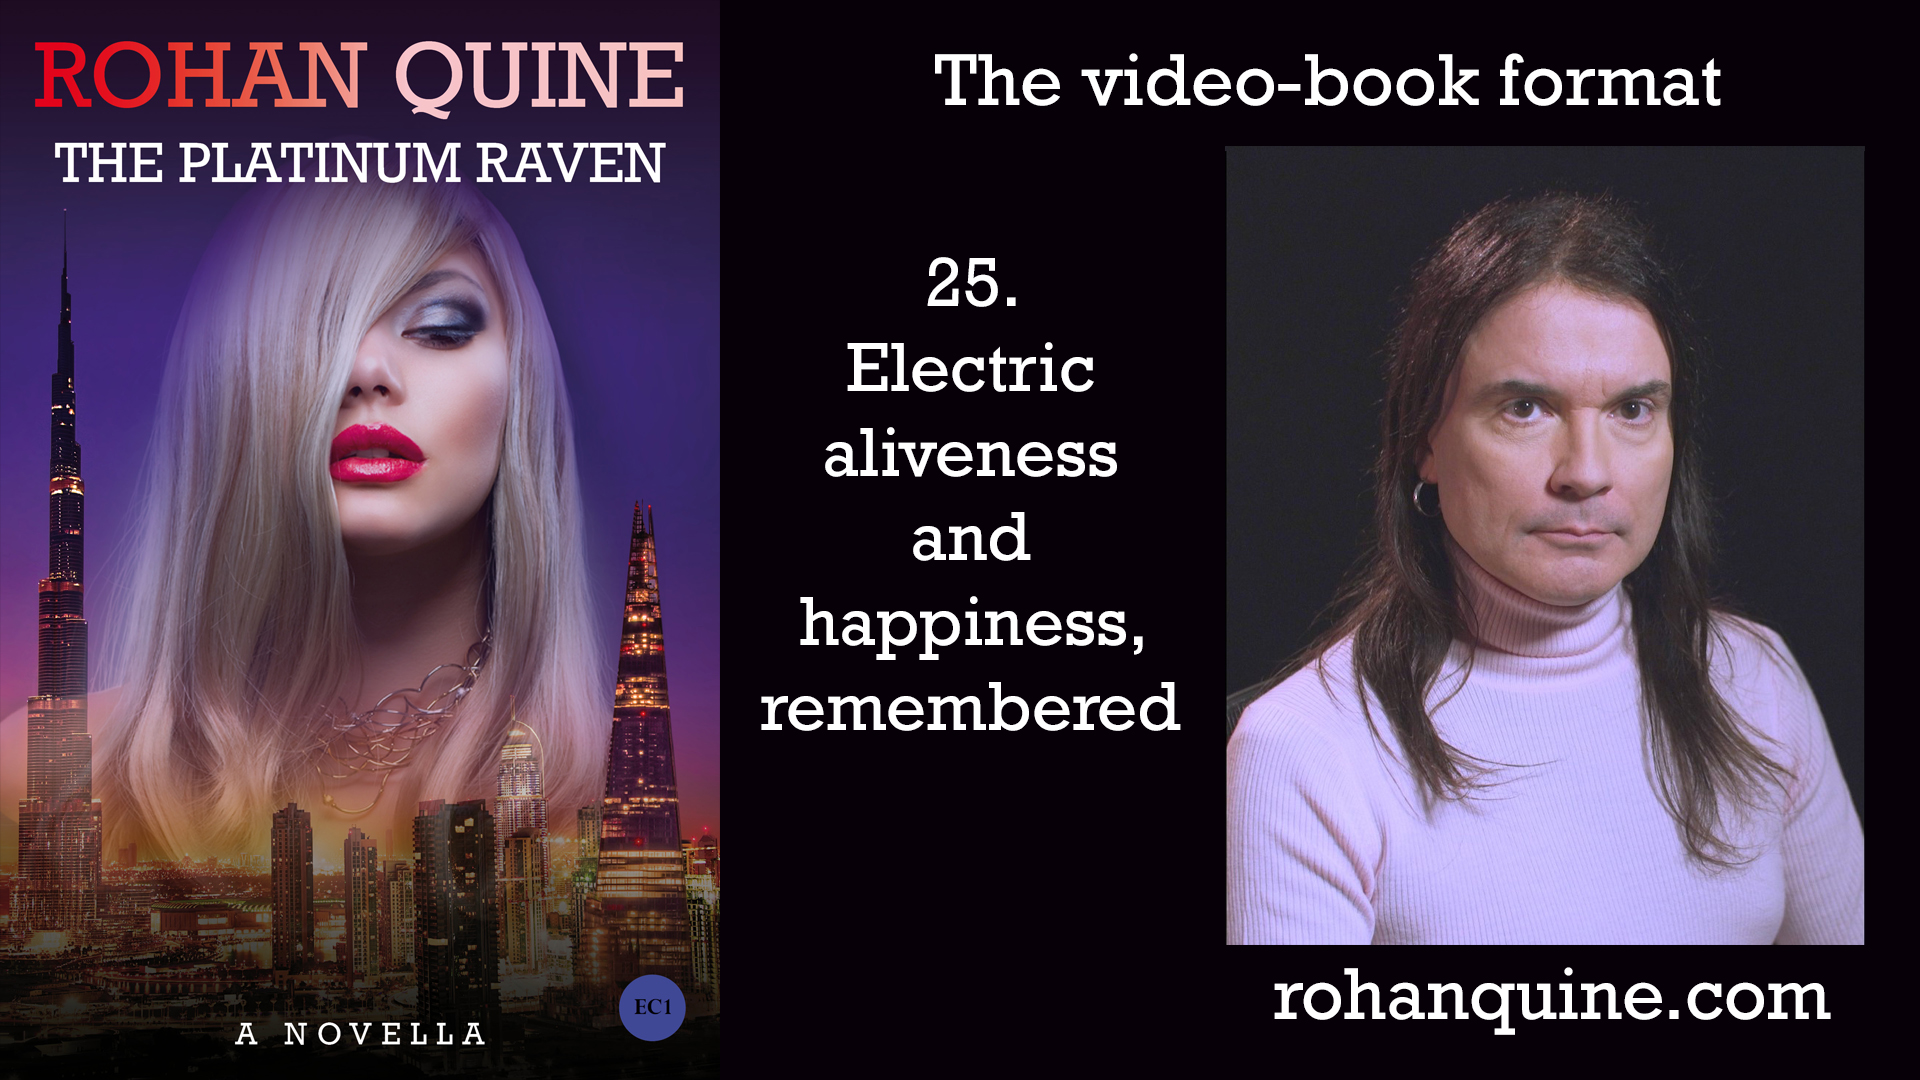 THE PLATINUM RAVEN by Rohan Quine - video-book format - chapter 25